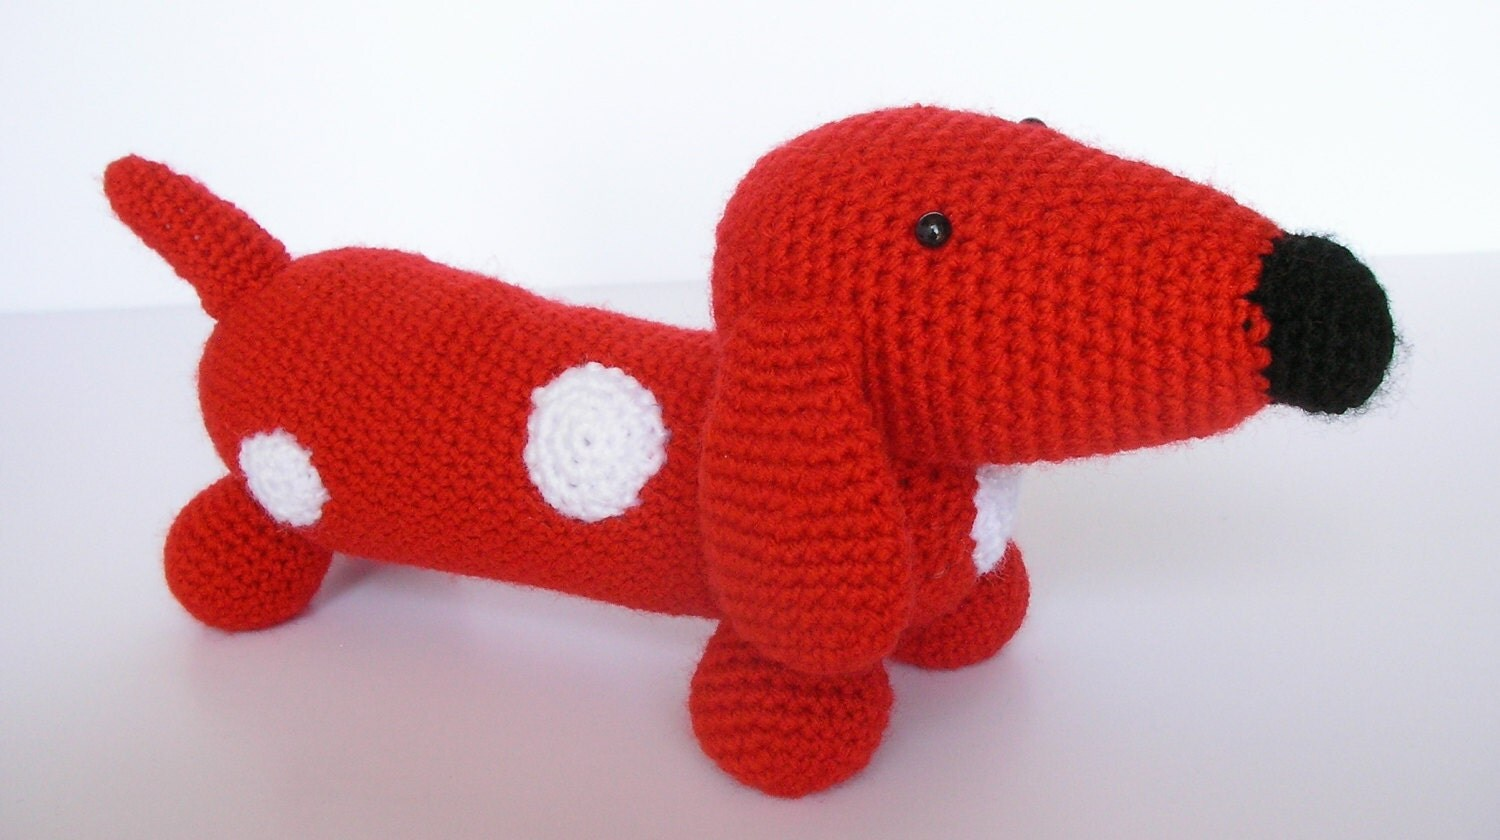 Amigurumi Wiener Dog Pattern : Amigurumi wiener dog pattern kalulu for